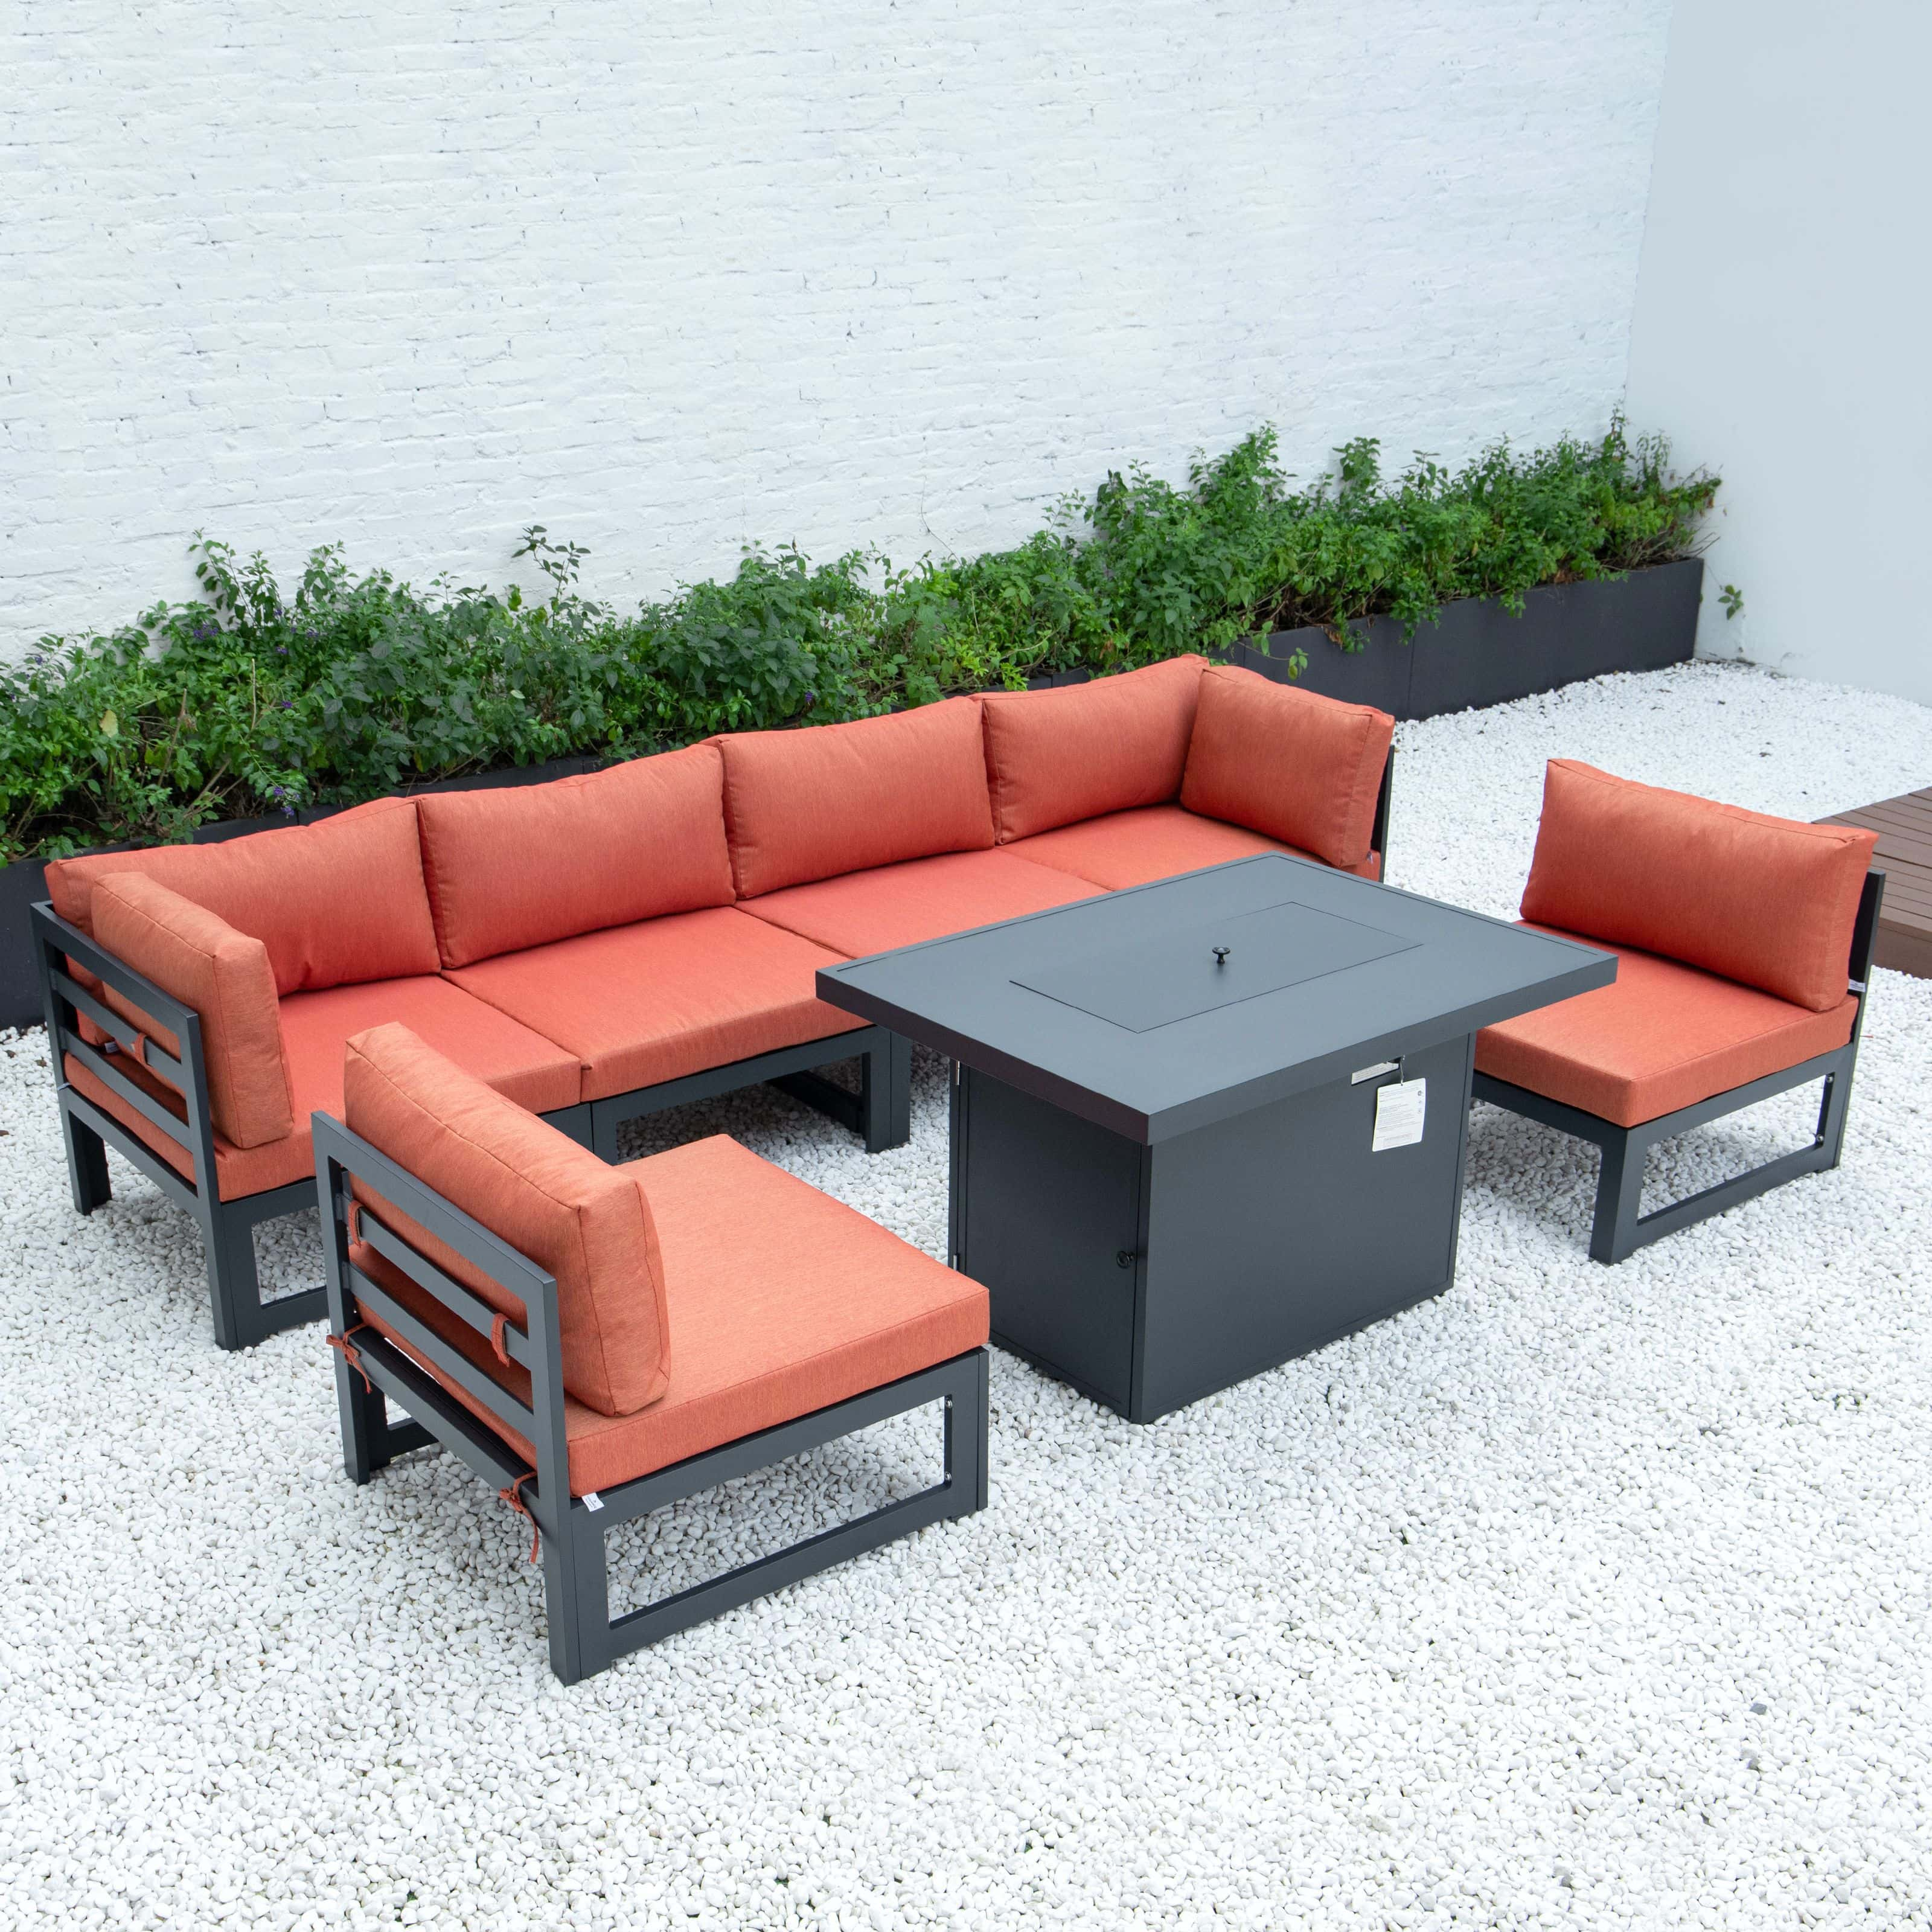 chelsea 7 piece patio sectional and fire pit table black aluminum with cushions orange by leisuremod